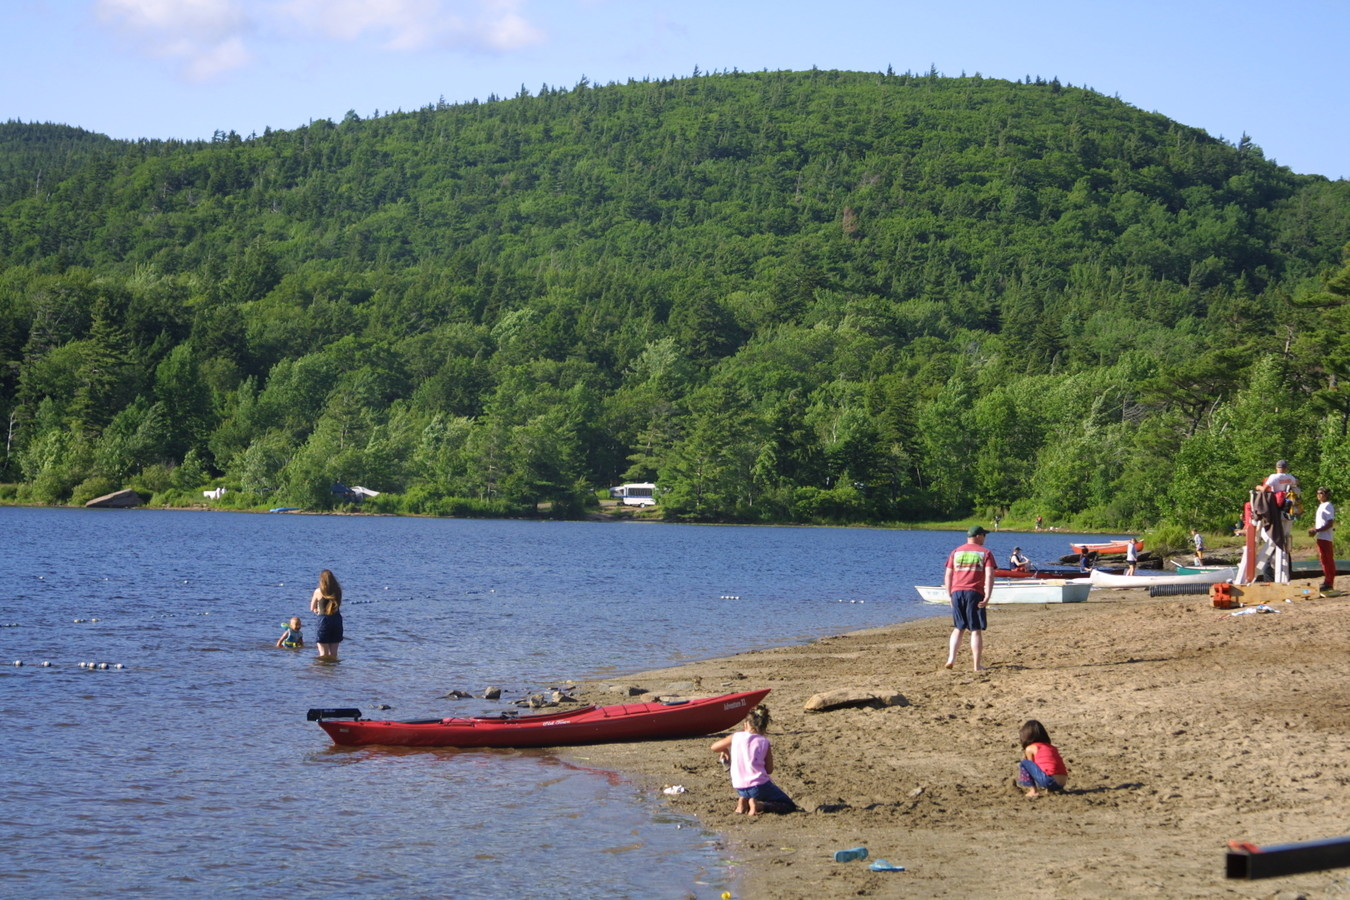 North-South Lake State Campground in the Great Northern Catskills